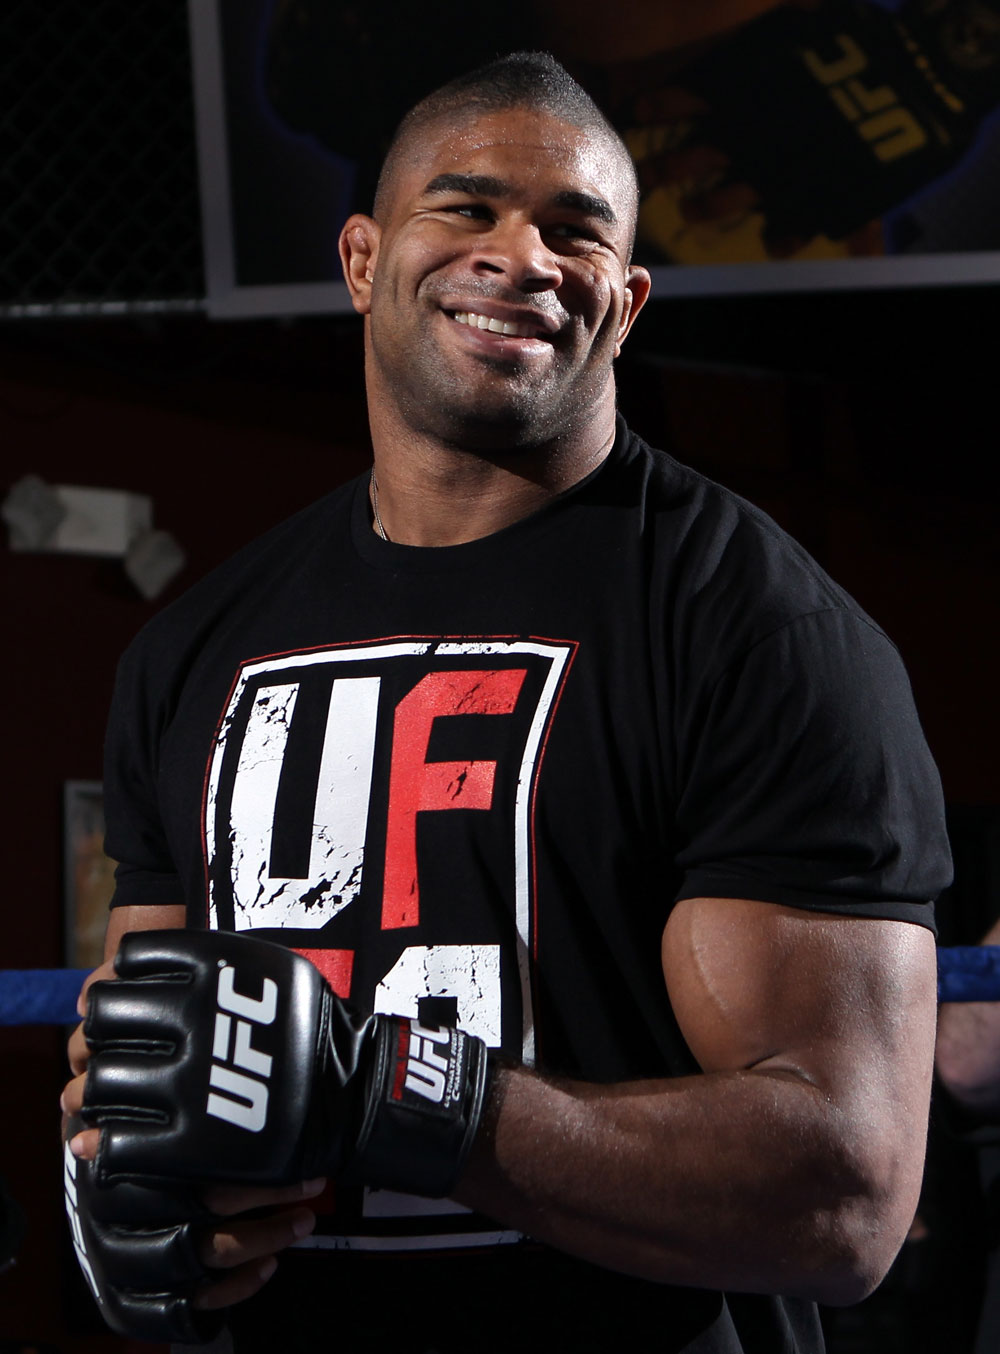 UFC heavyweight contender Alistair Overeem